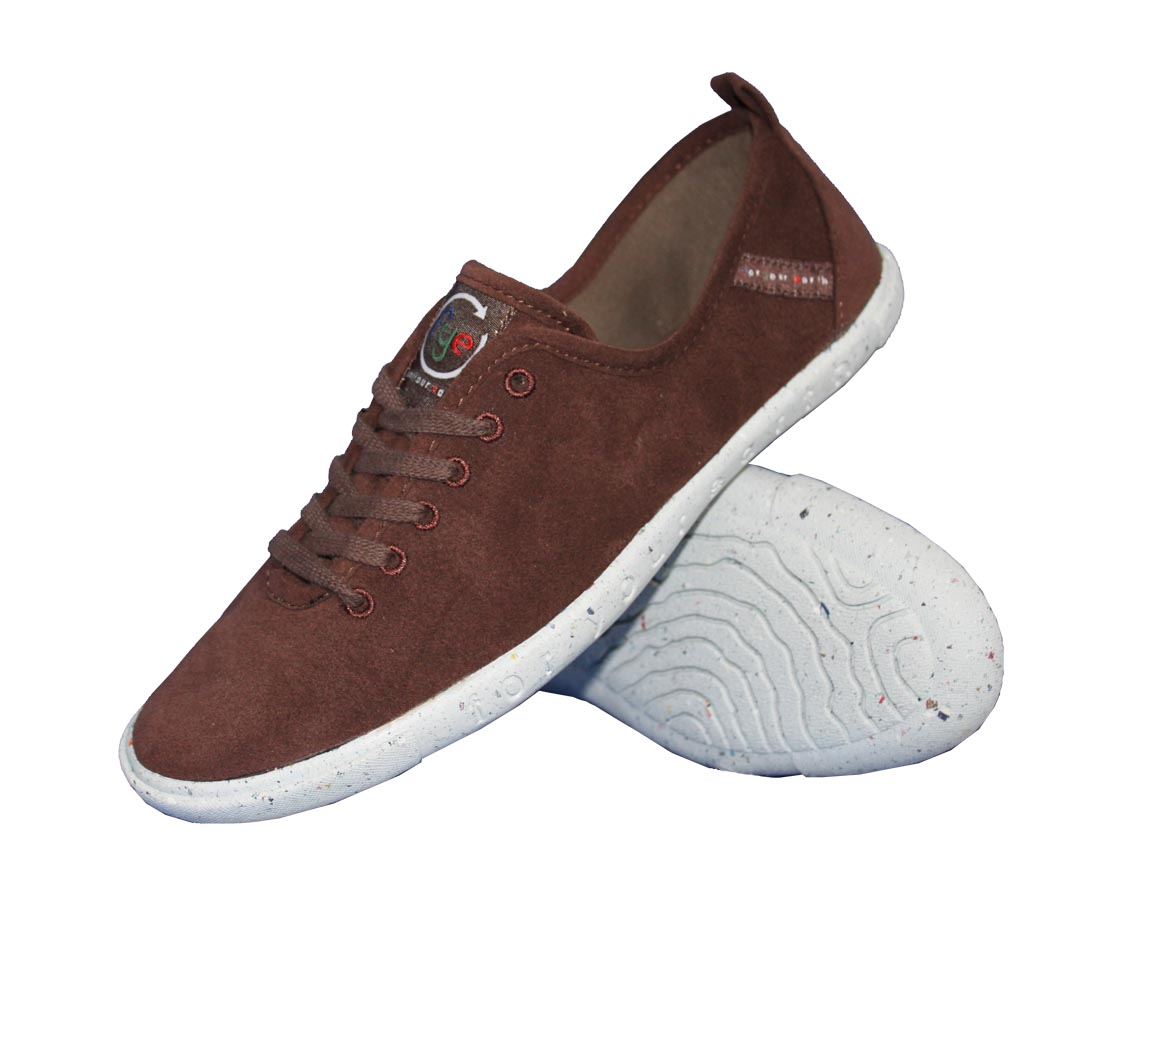 Chaussure Homme Ultra suède Chocolate